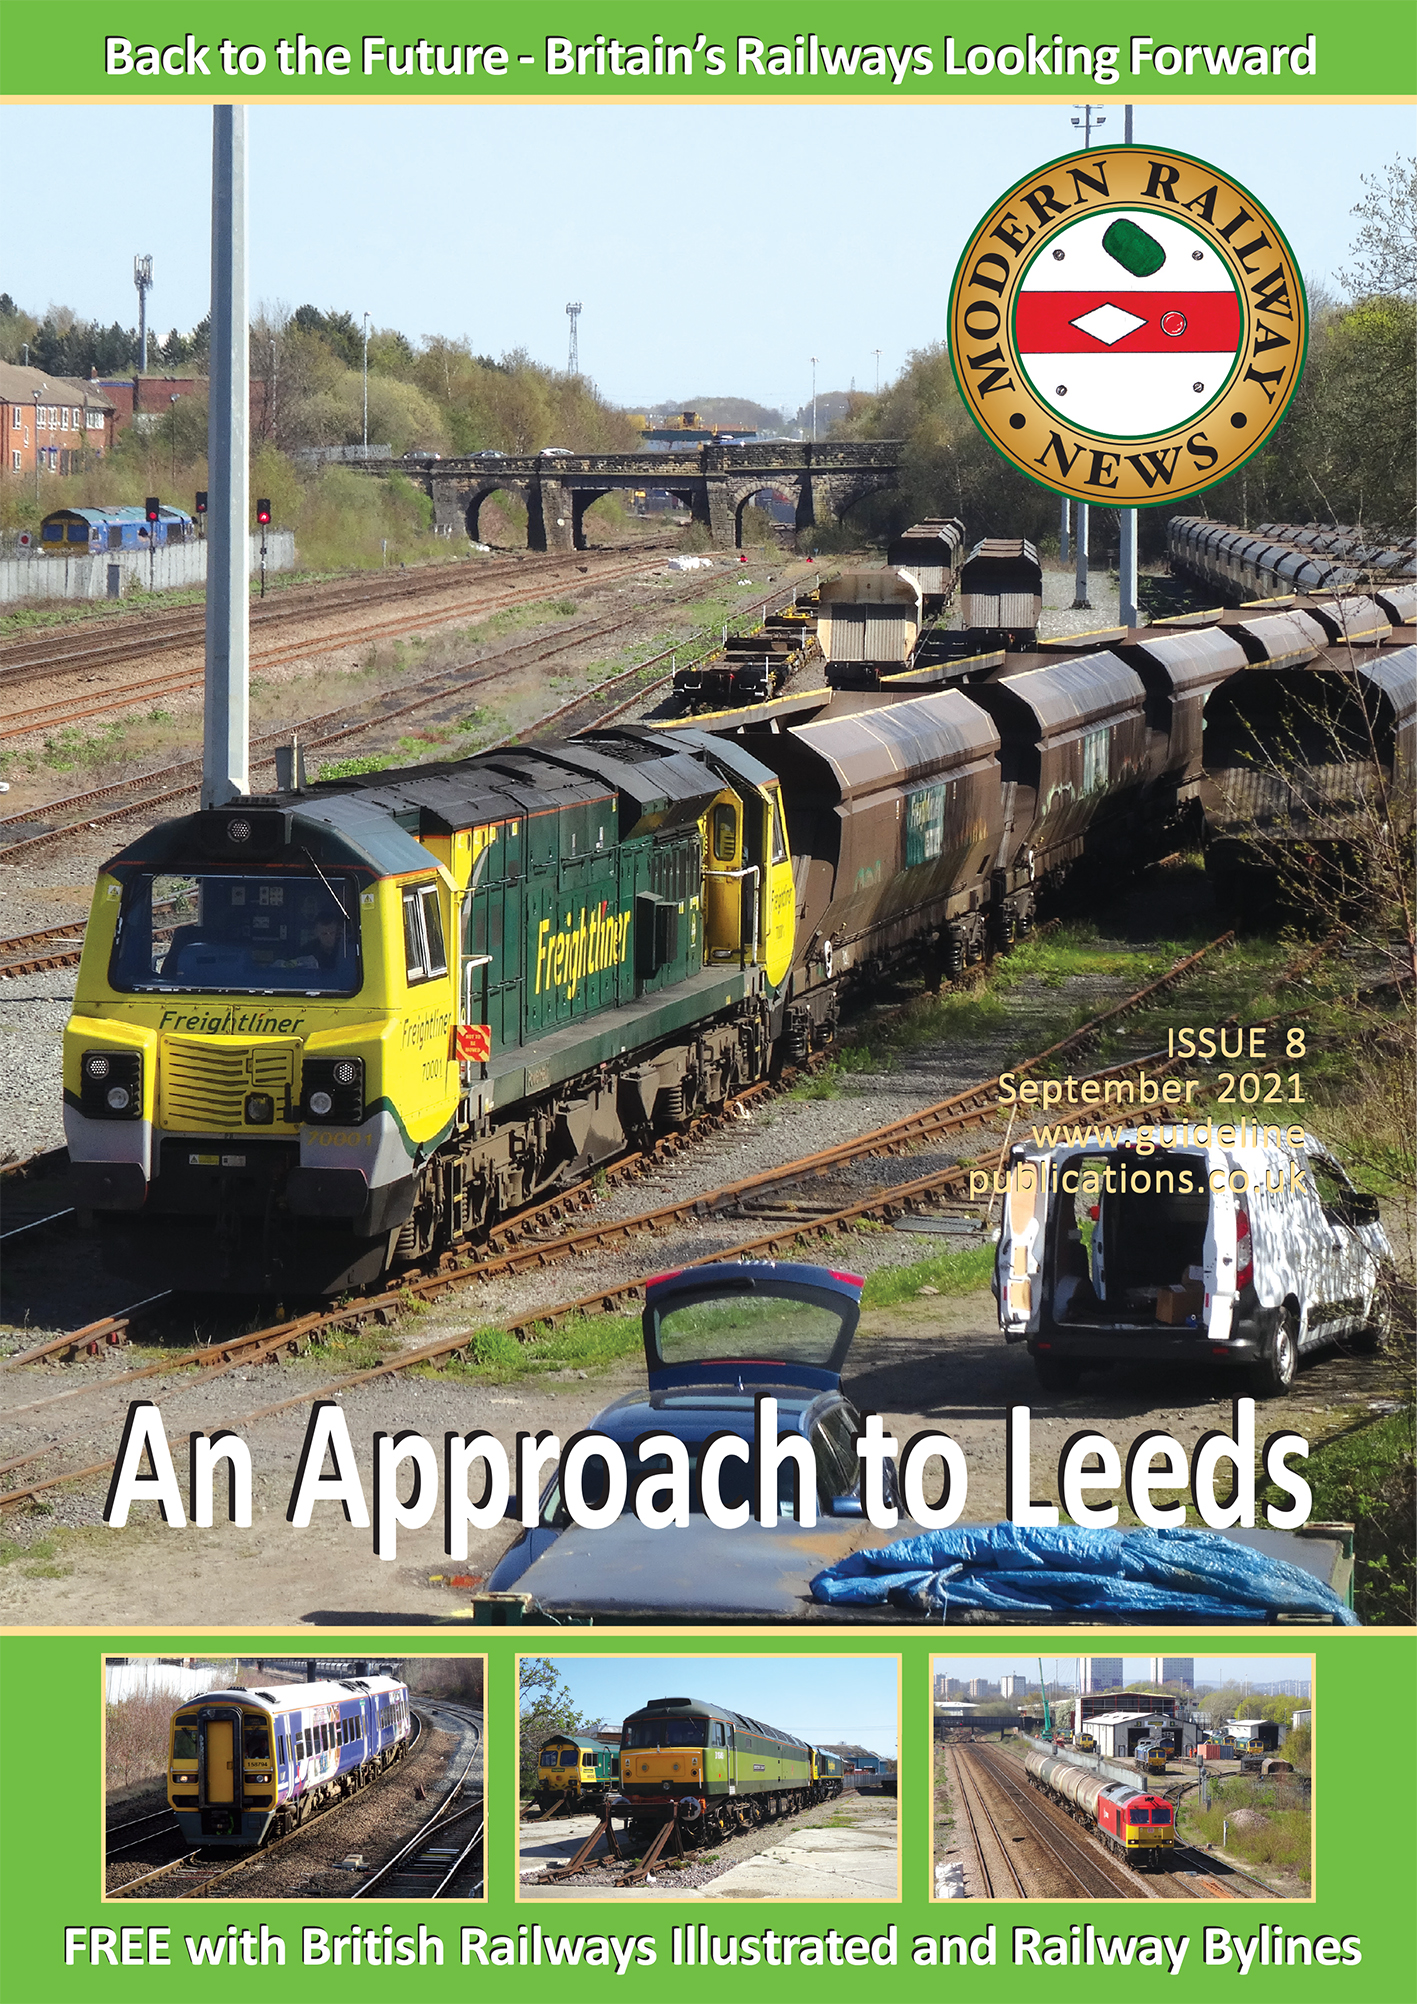 Guideline Publications Model Railway News issue 10 FREE DIGITAL ISSUE